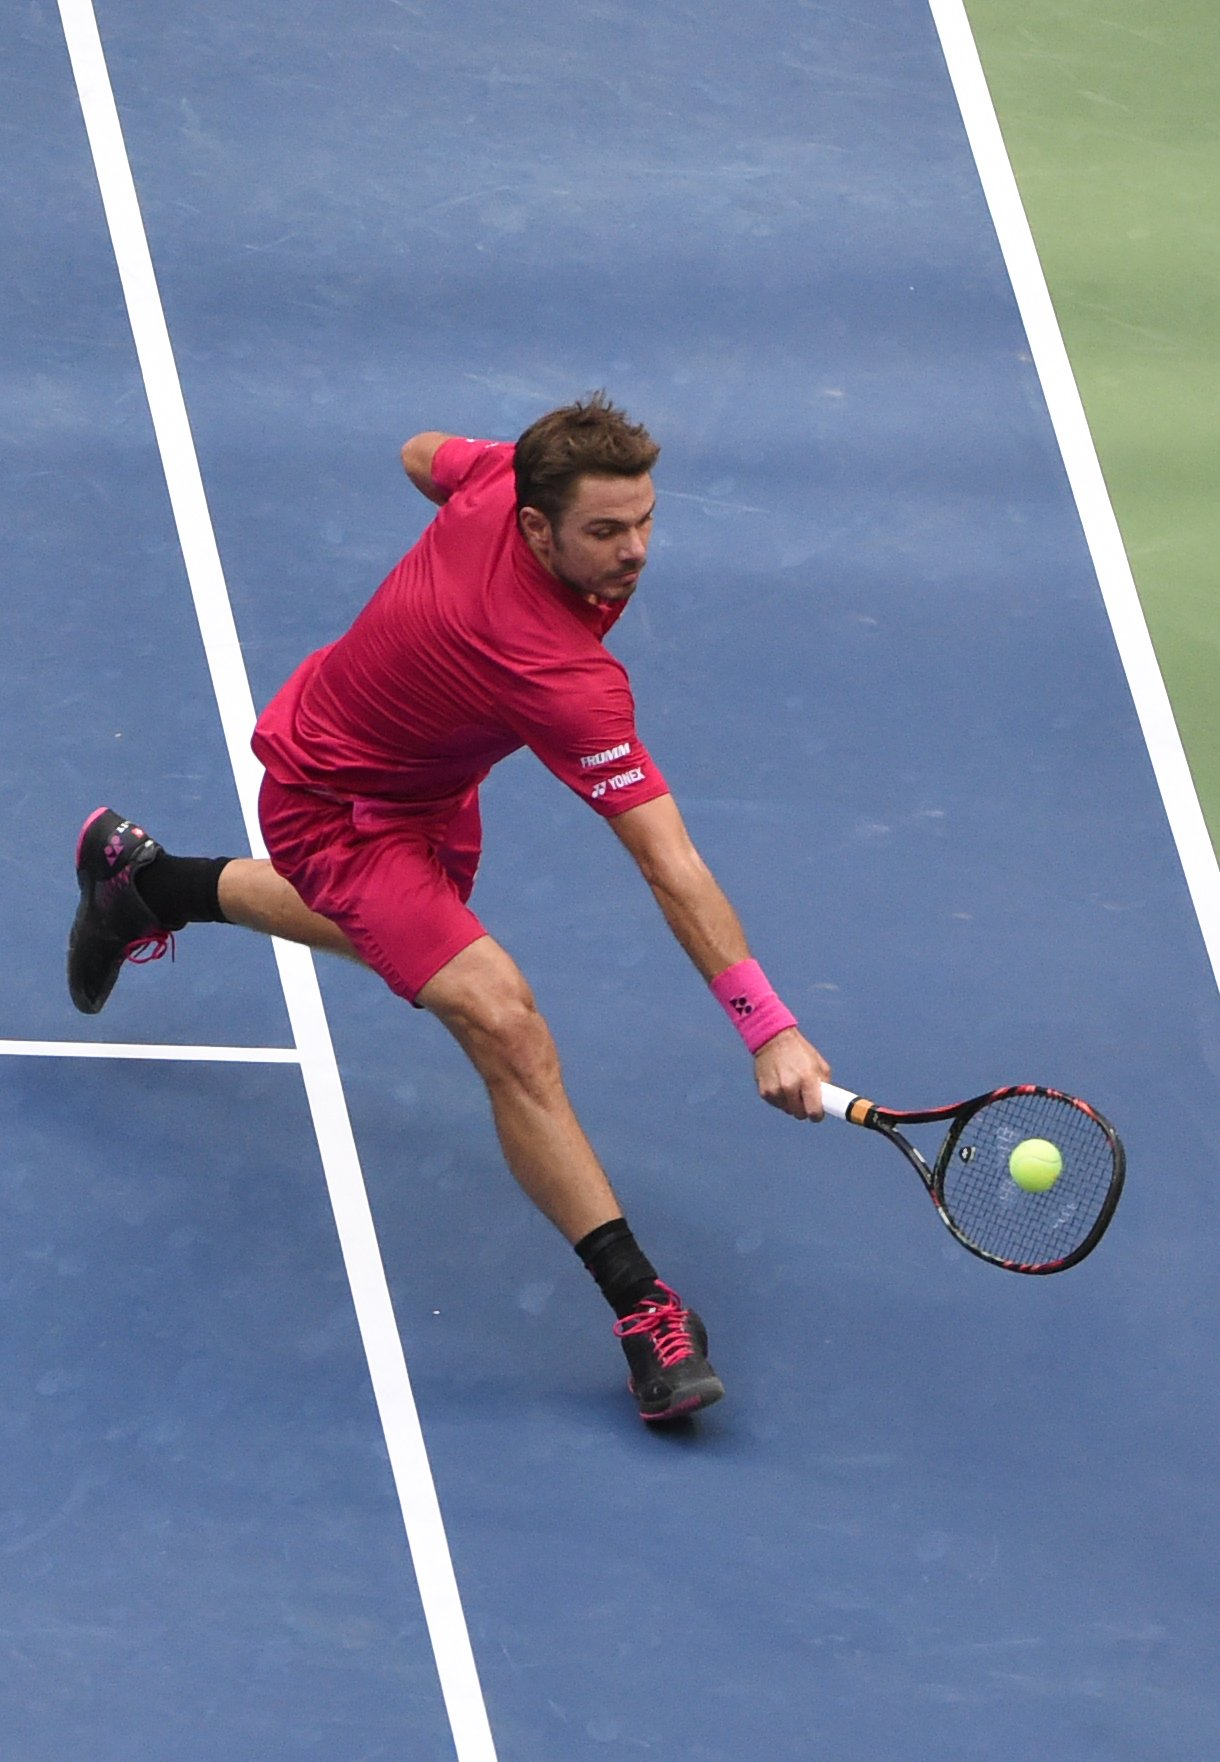 Stan Wawrinka of Switzerland hits a return to Novak Djokovic of Serbia during their 2016 US Open men's final match at the USTA Billie Jean King National Tennis Center in New York on September 11, 2016. / AFP / Timothy A. CLARY (Photo credit should read TIMOTHY A. CLARY/AFP/Getty Images)